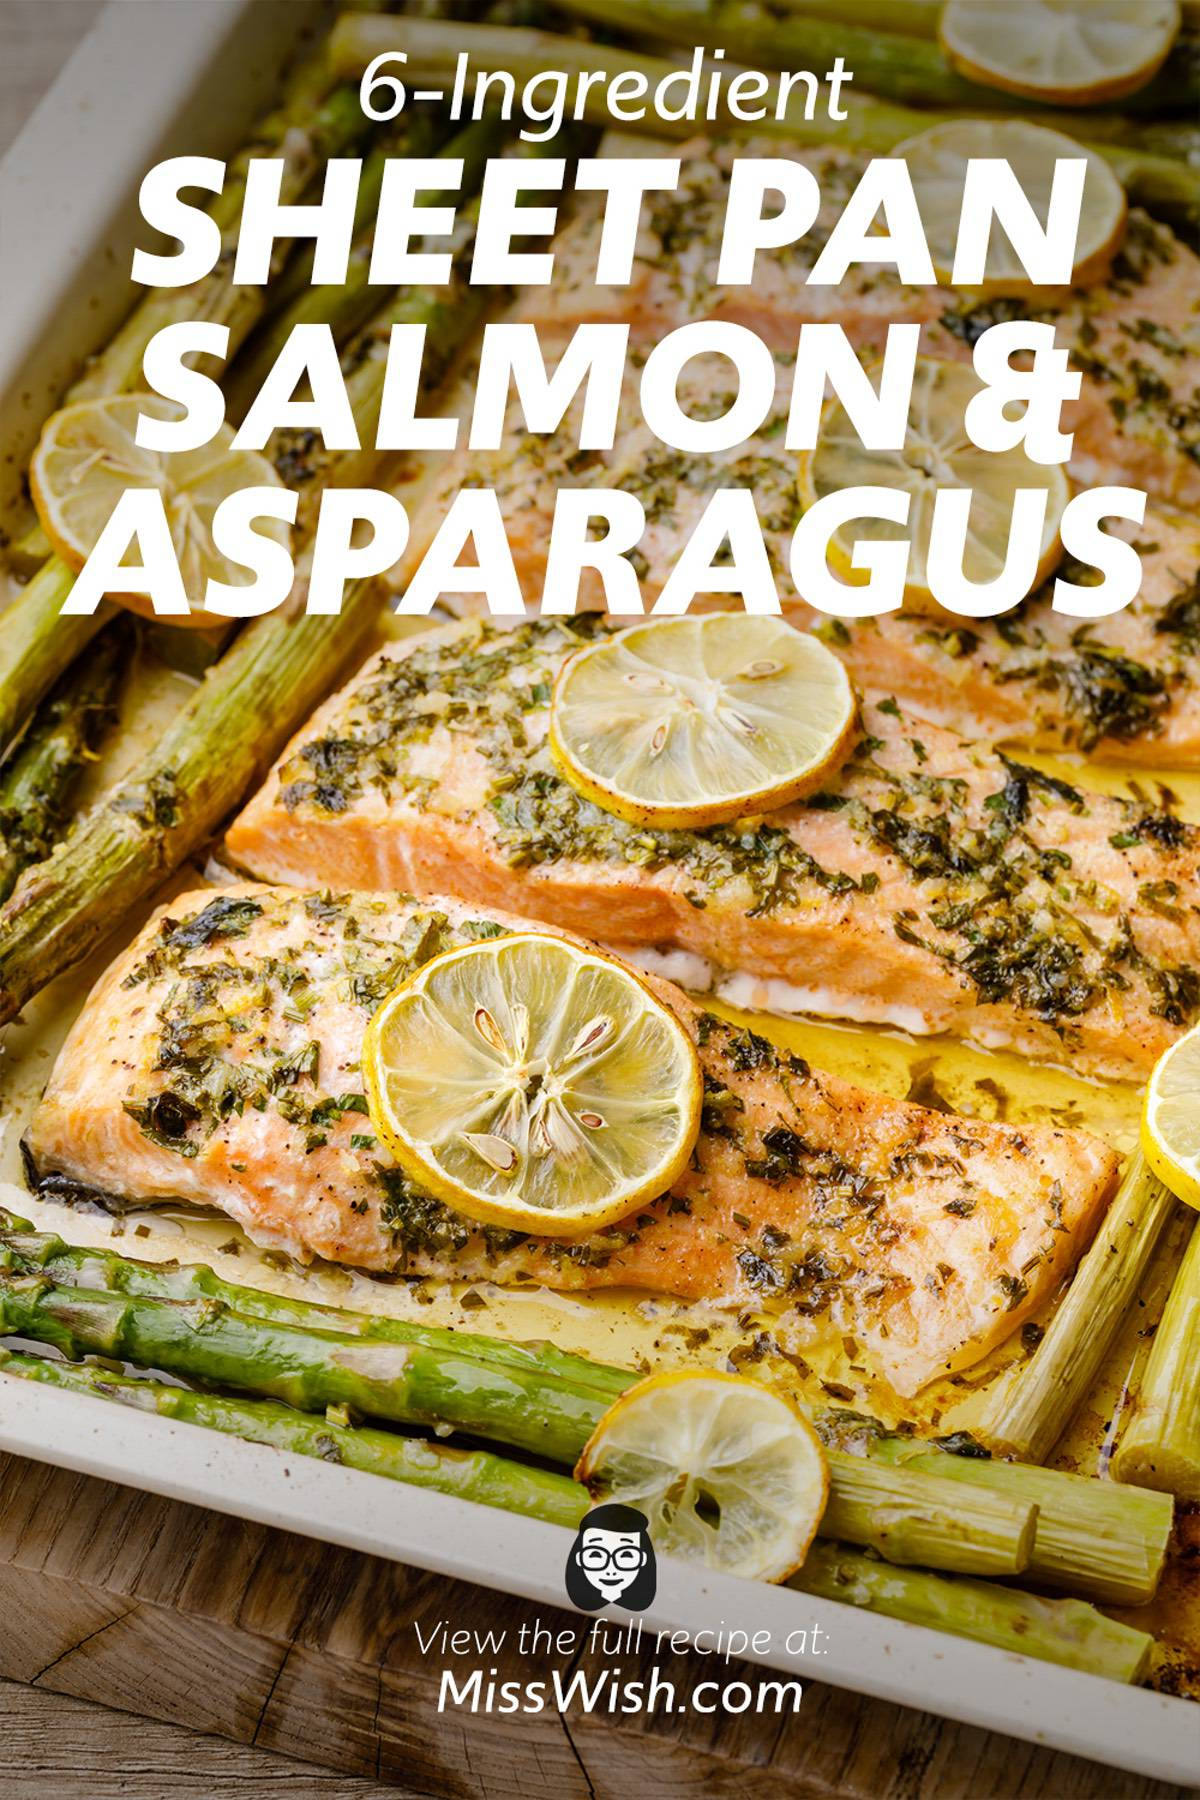 Easy 6-Ingredient Sheet Pan Salmon and Asparagus